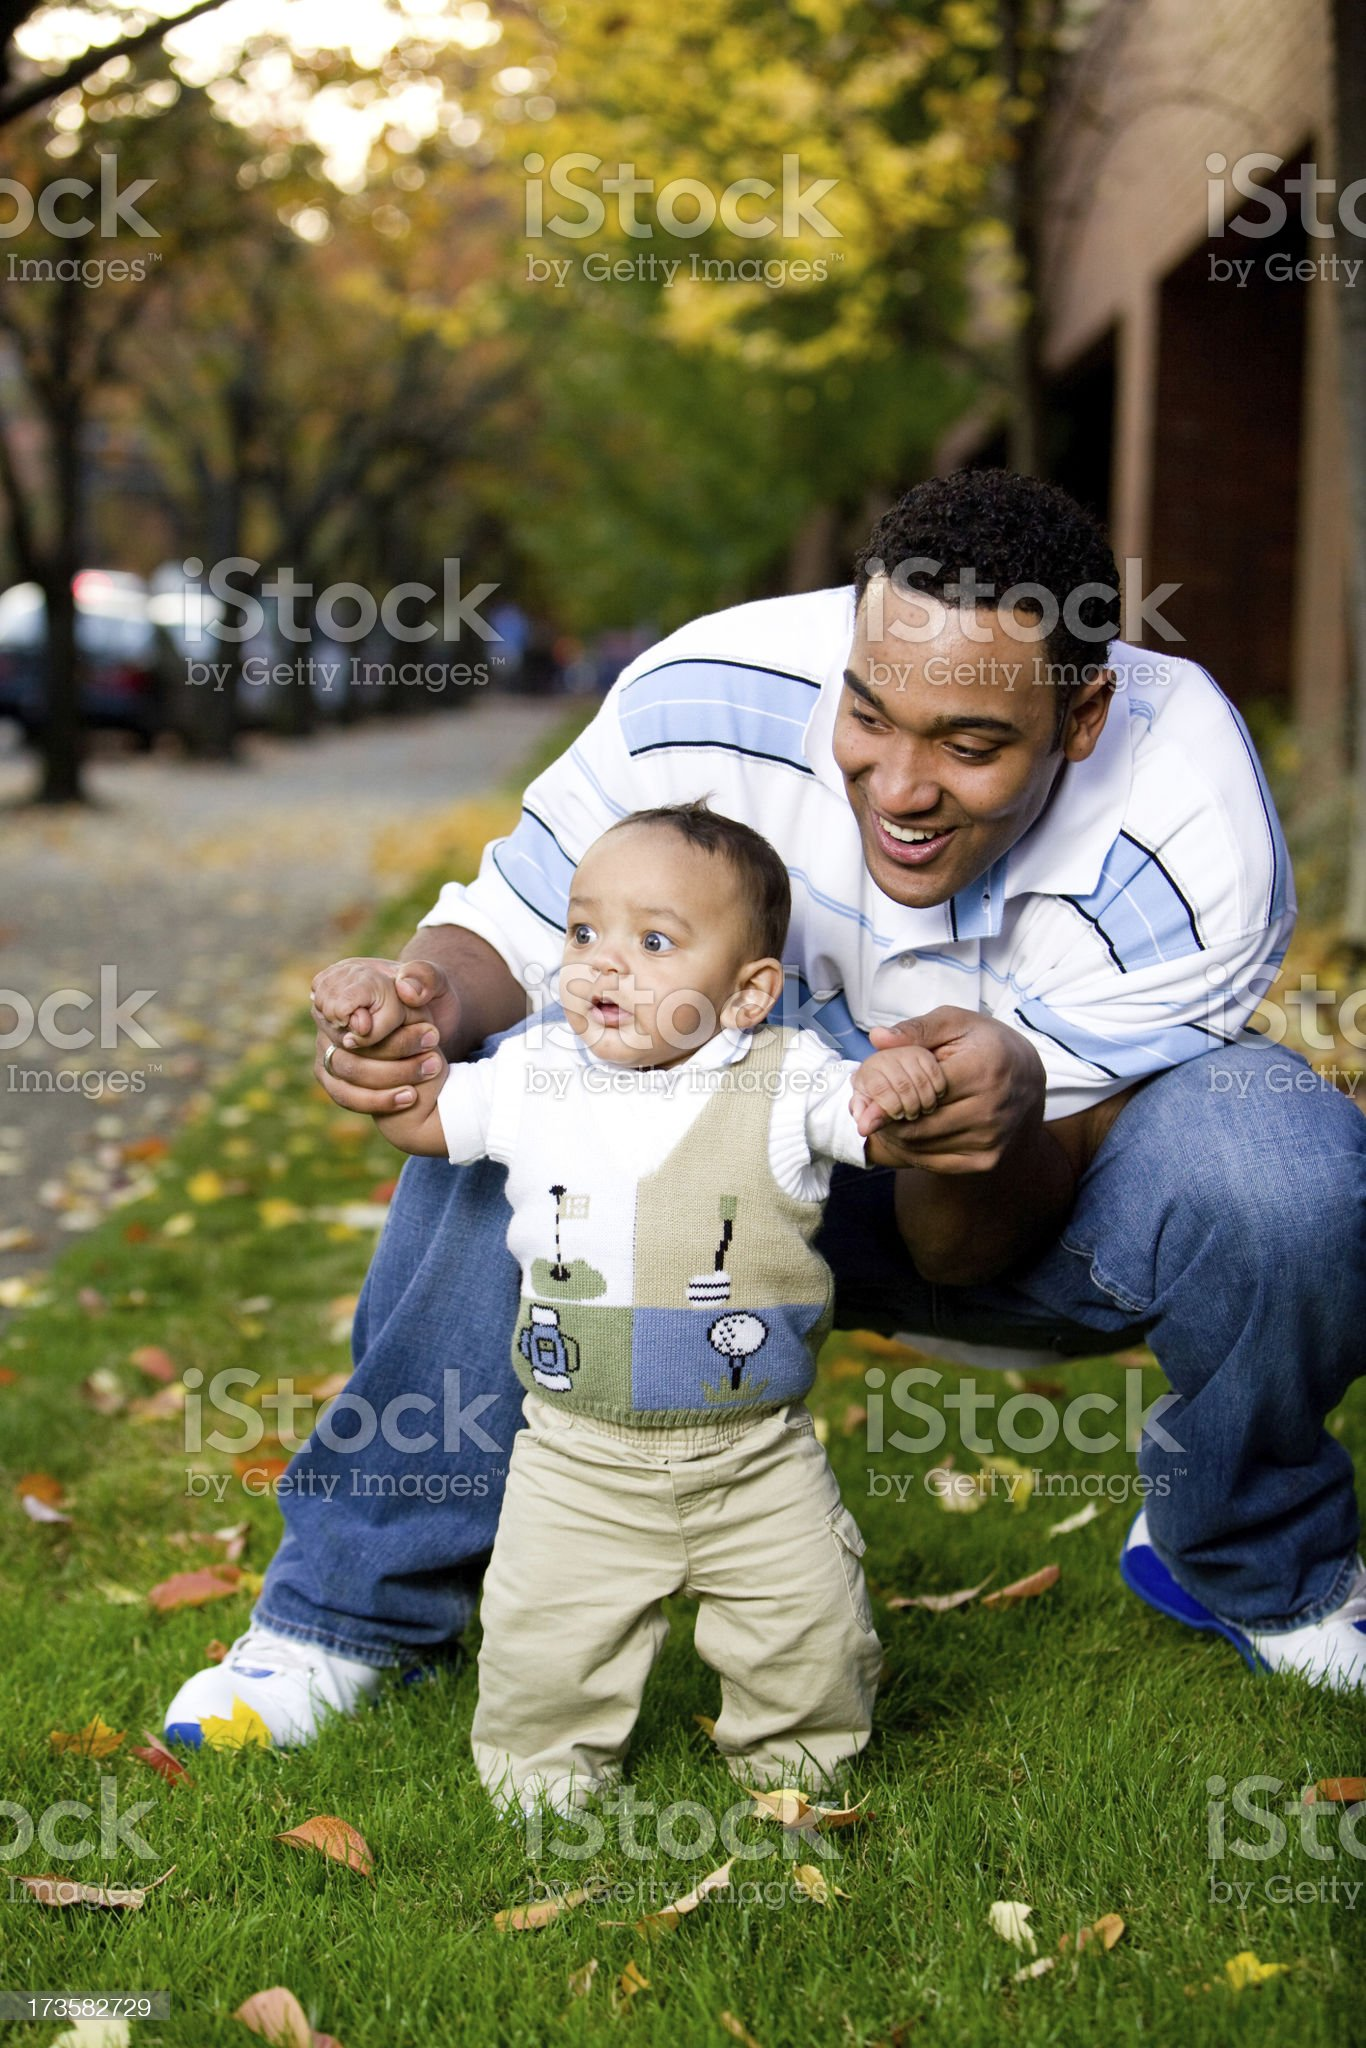 father and infant son royalty-free stock photo